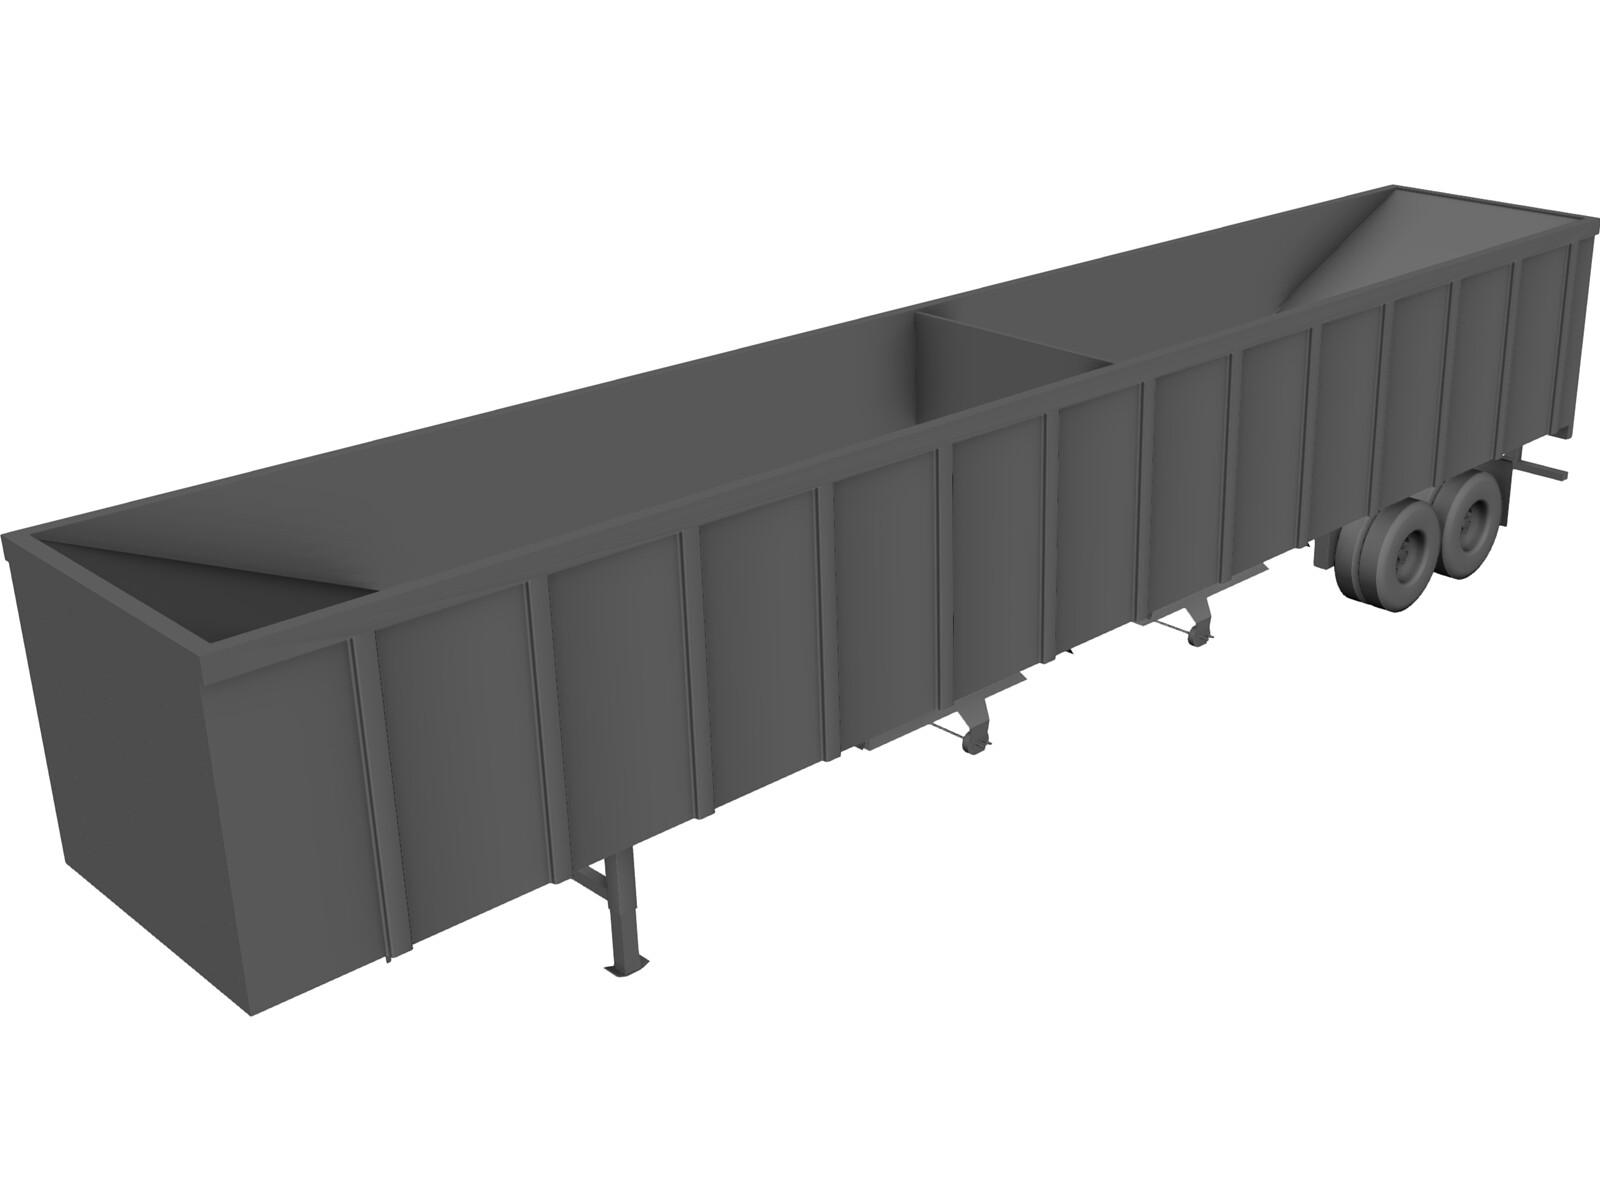 Hopper Bottom Trailer 3D Model